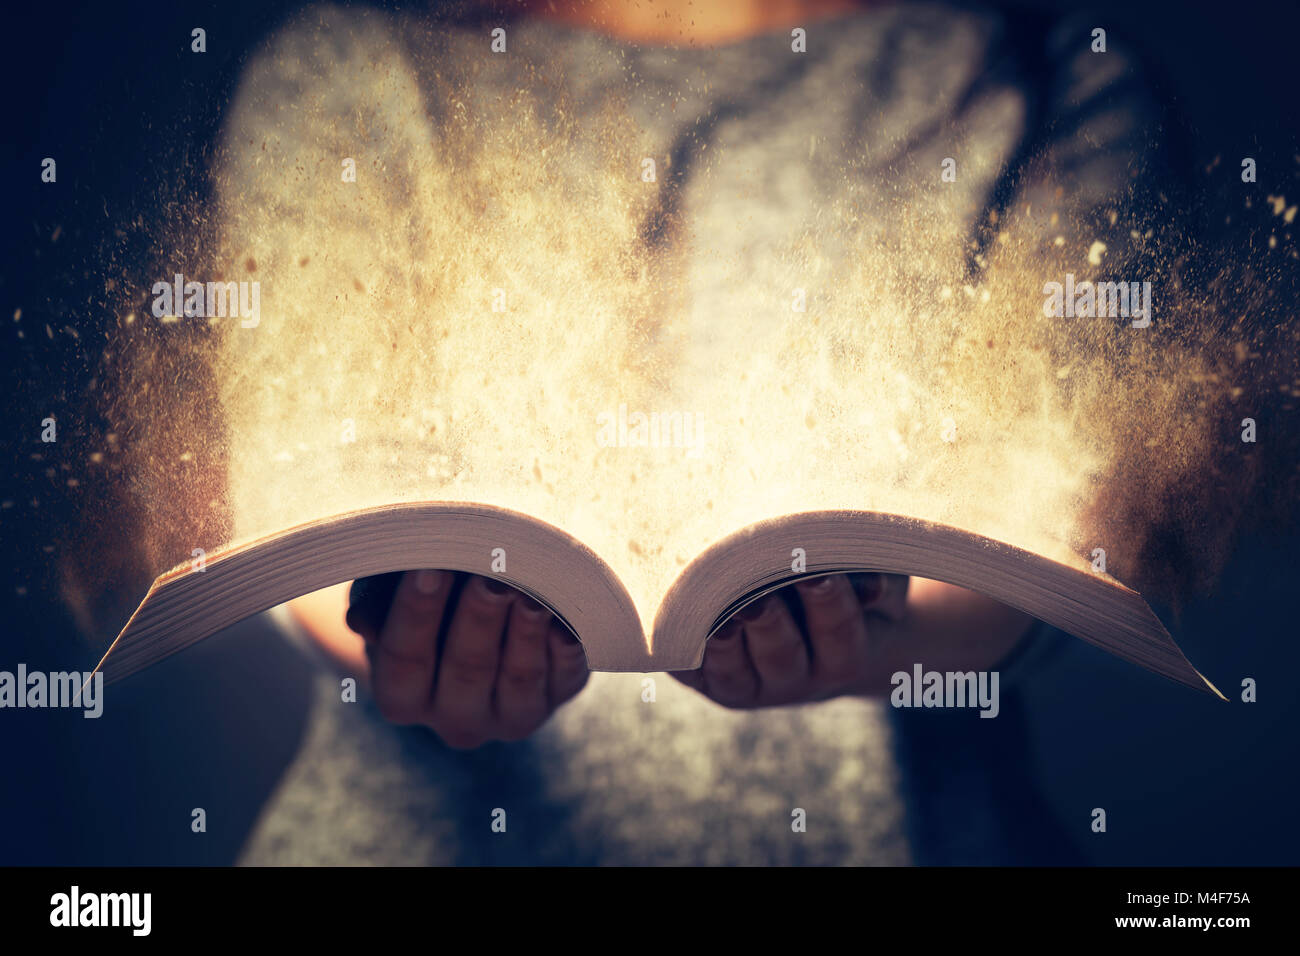 Woman holding an open book bursting with light. - Stock Image